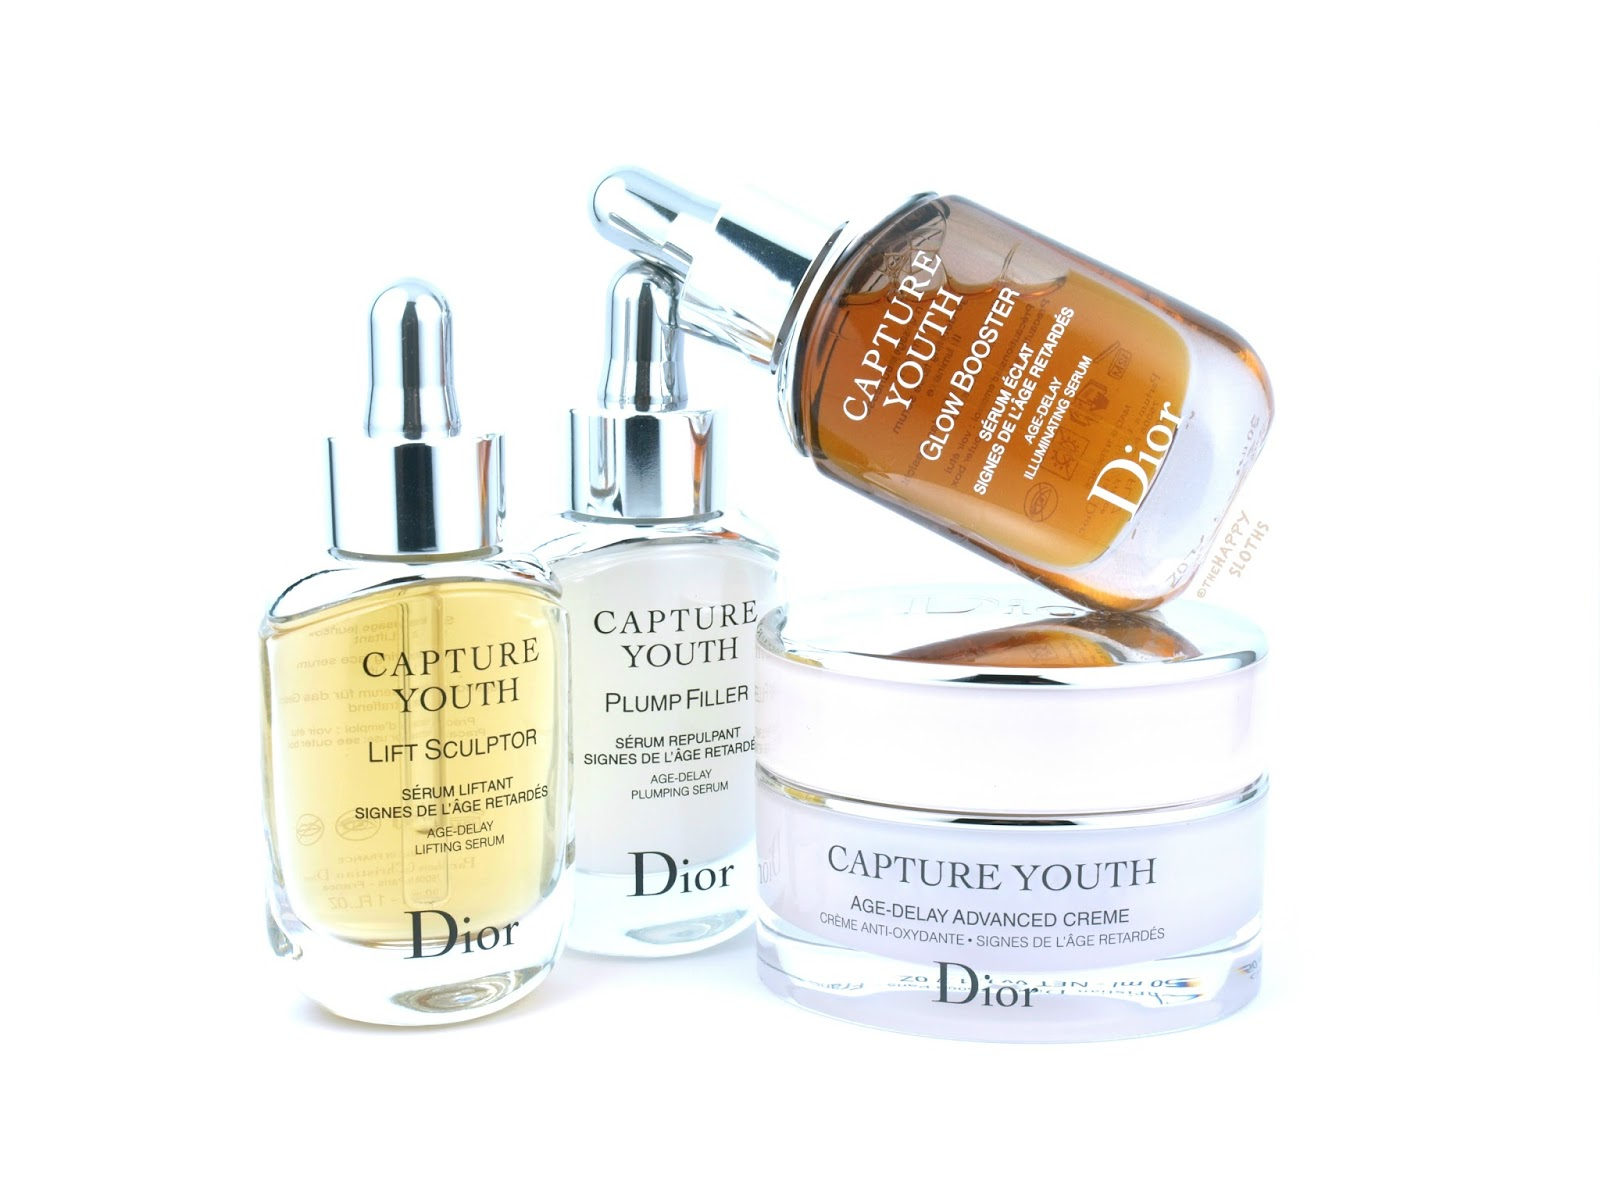 Dior | Capture Youth Skincare Collection: Review